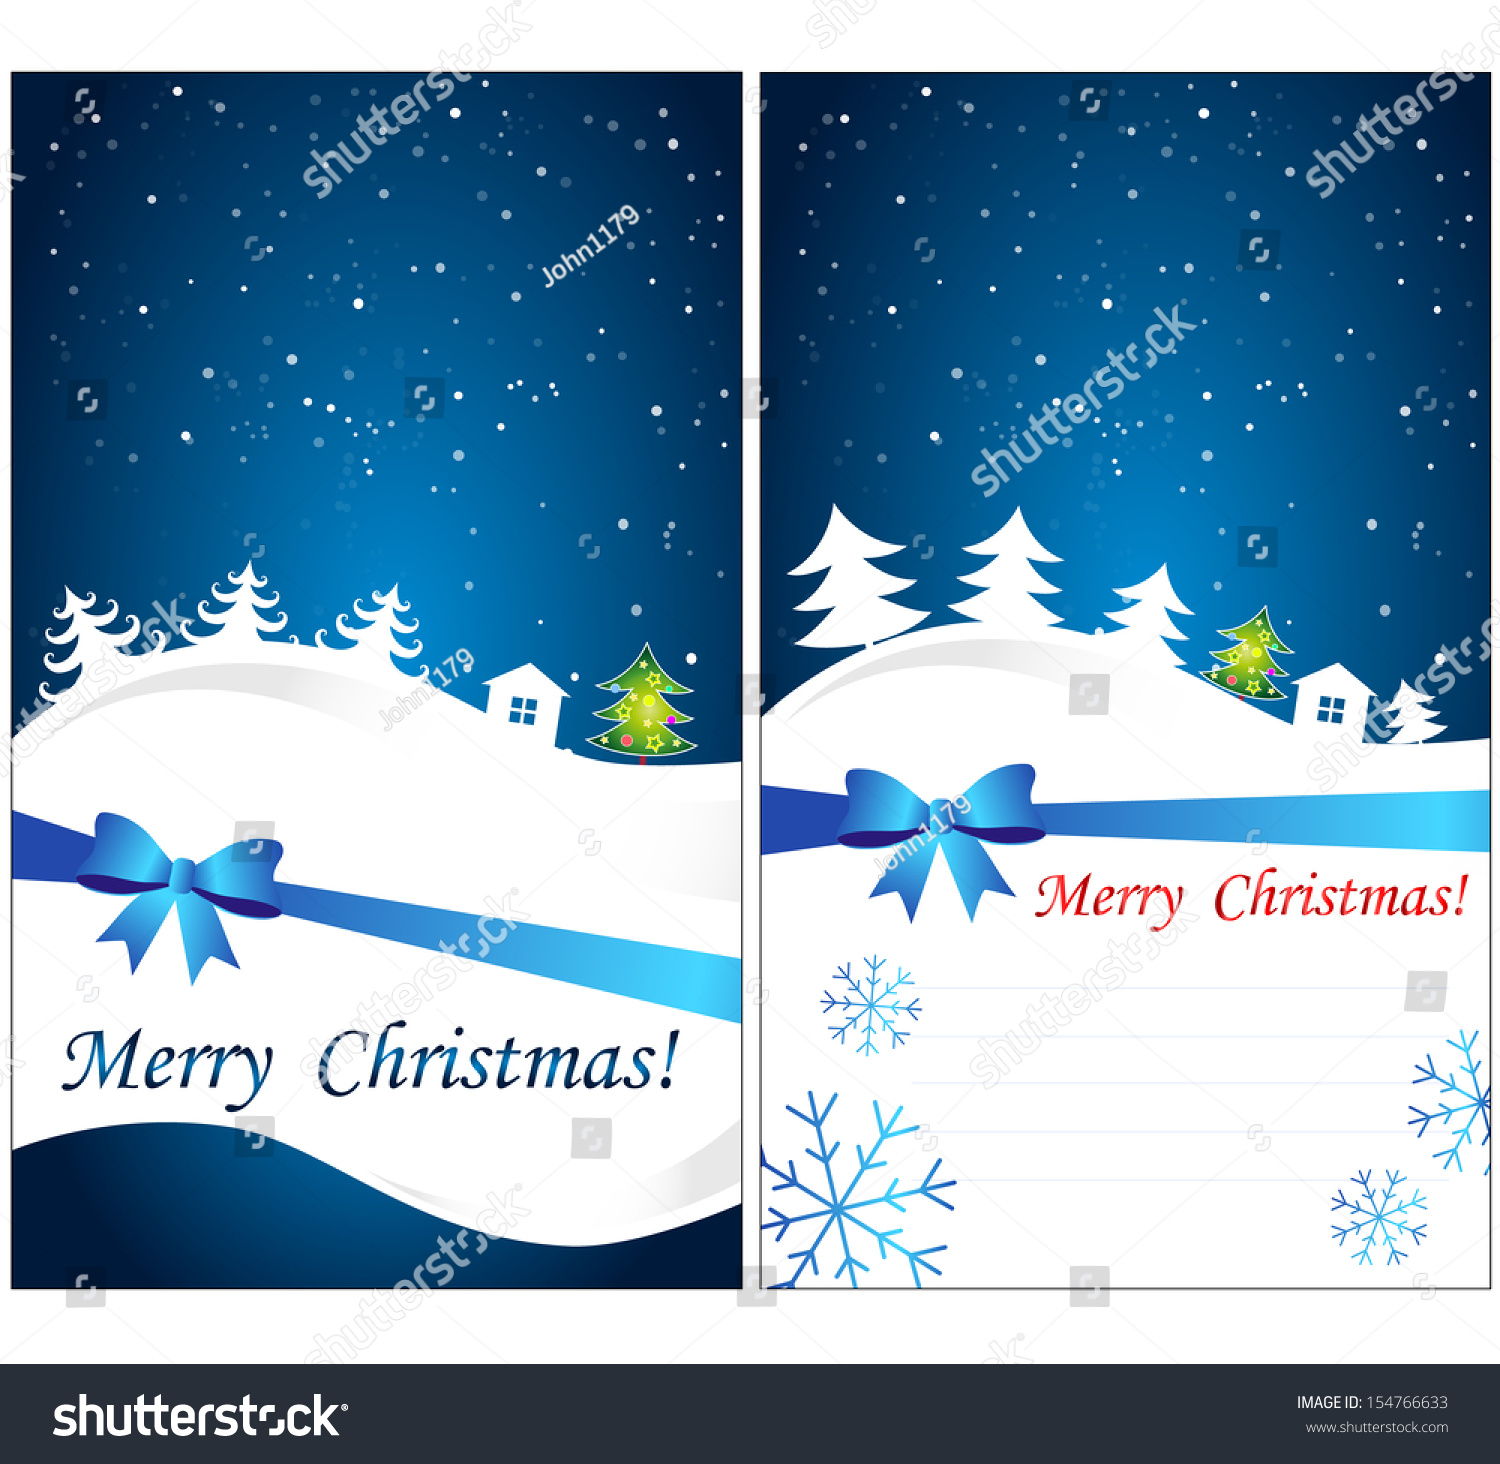 beautiful christmas cards for congratulations - Beautiful Christmas Cards